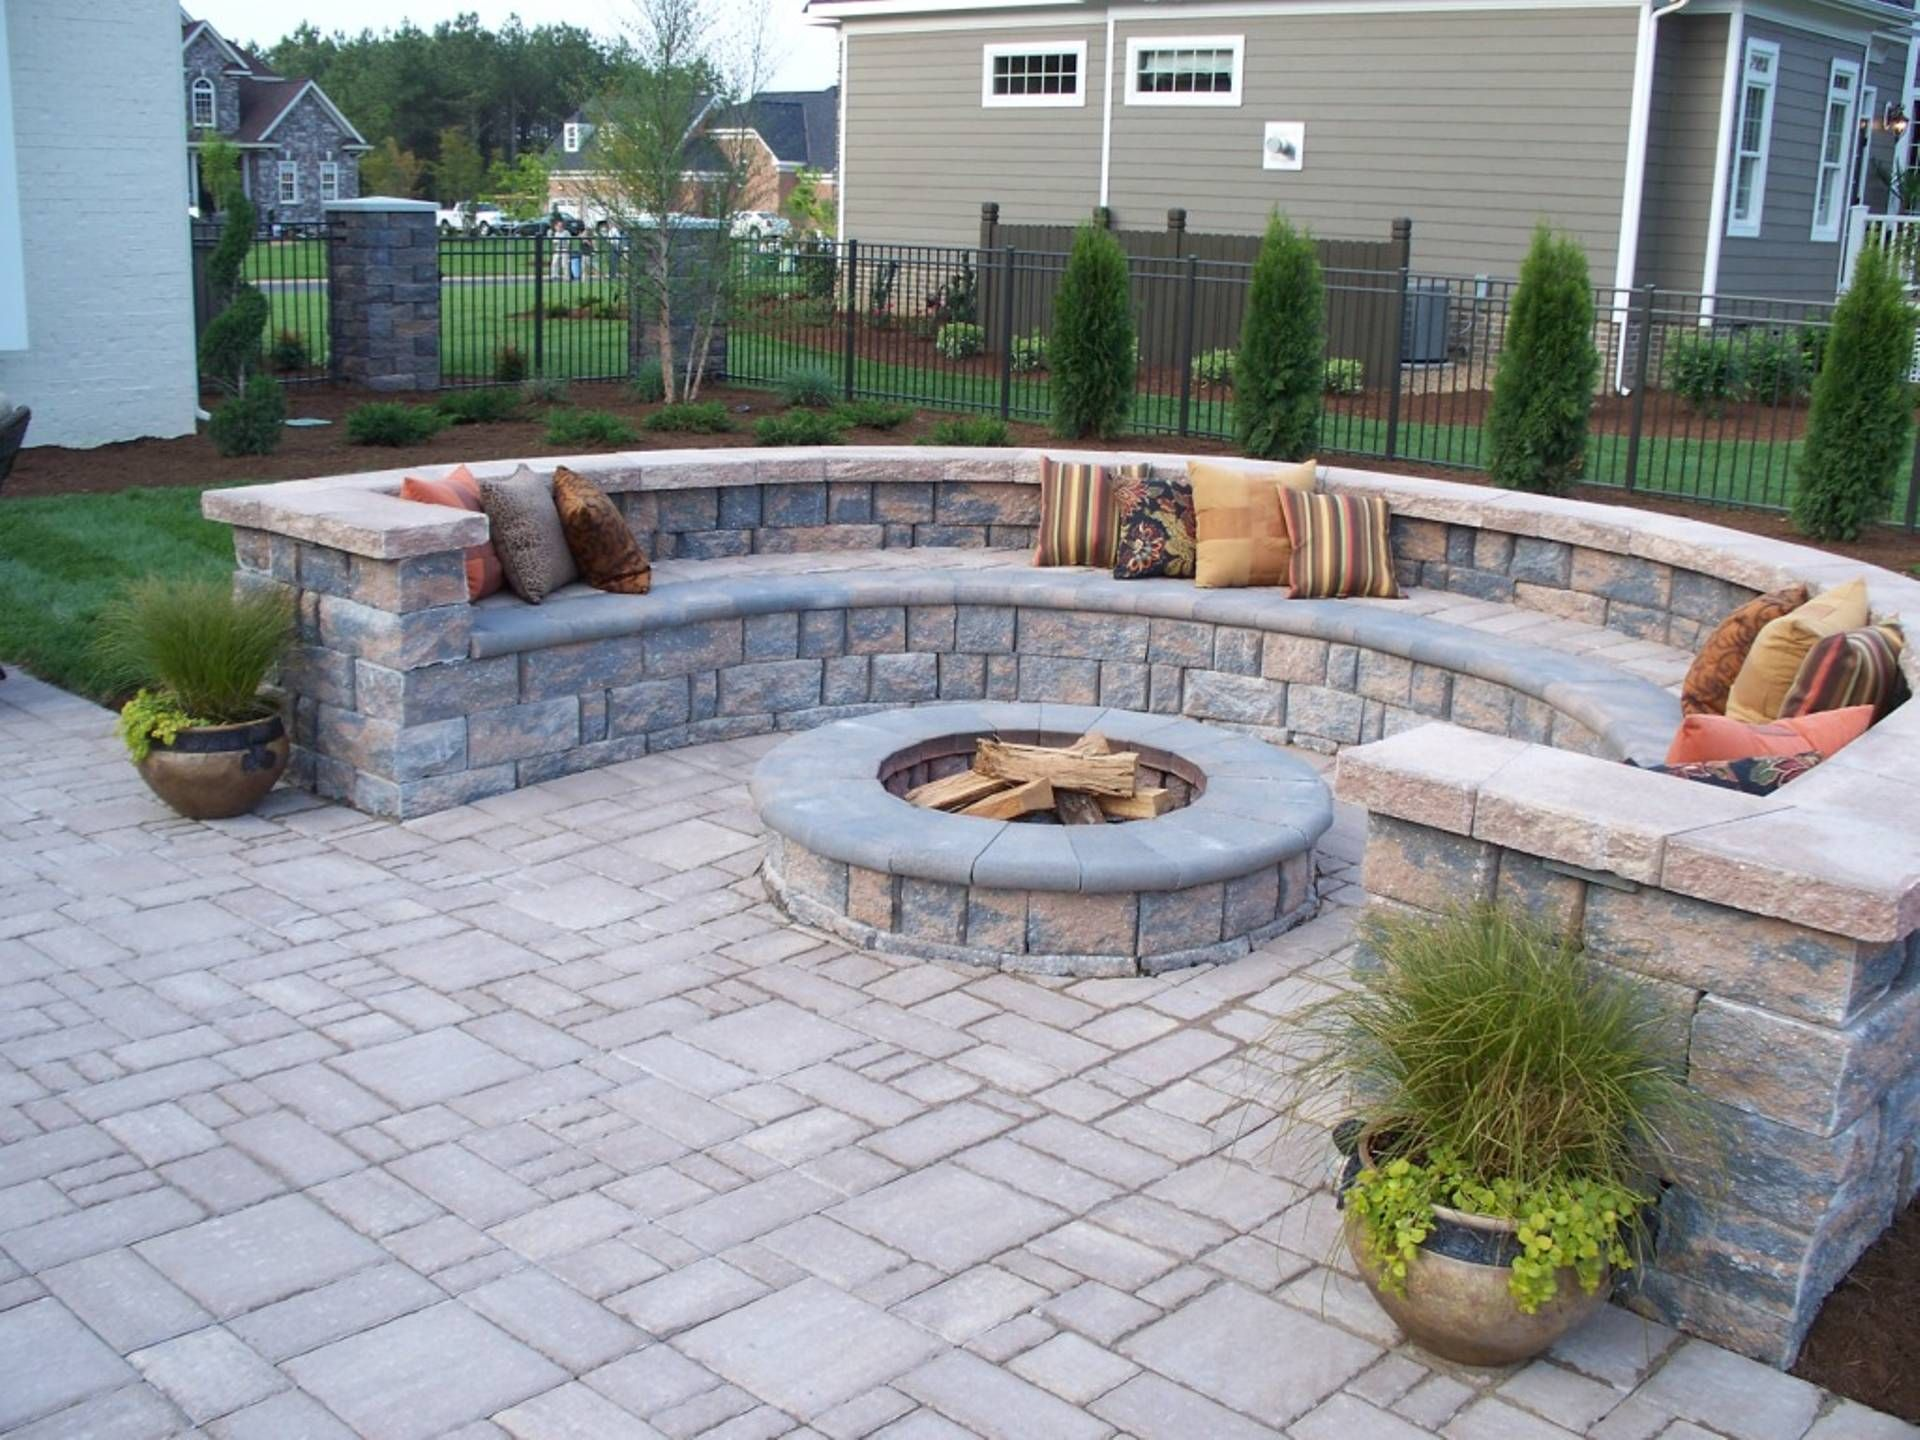 Patio Paver Designs Ideas best paver patio design ideas pictures - interior design ideas